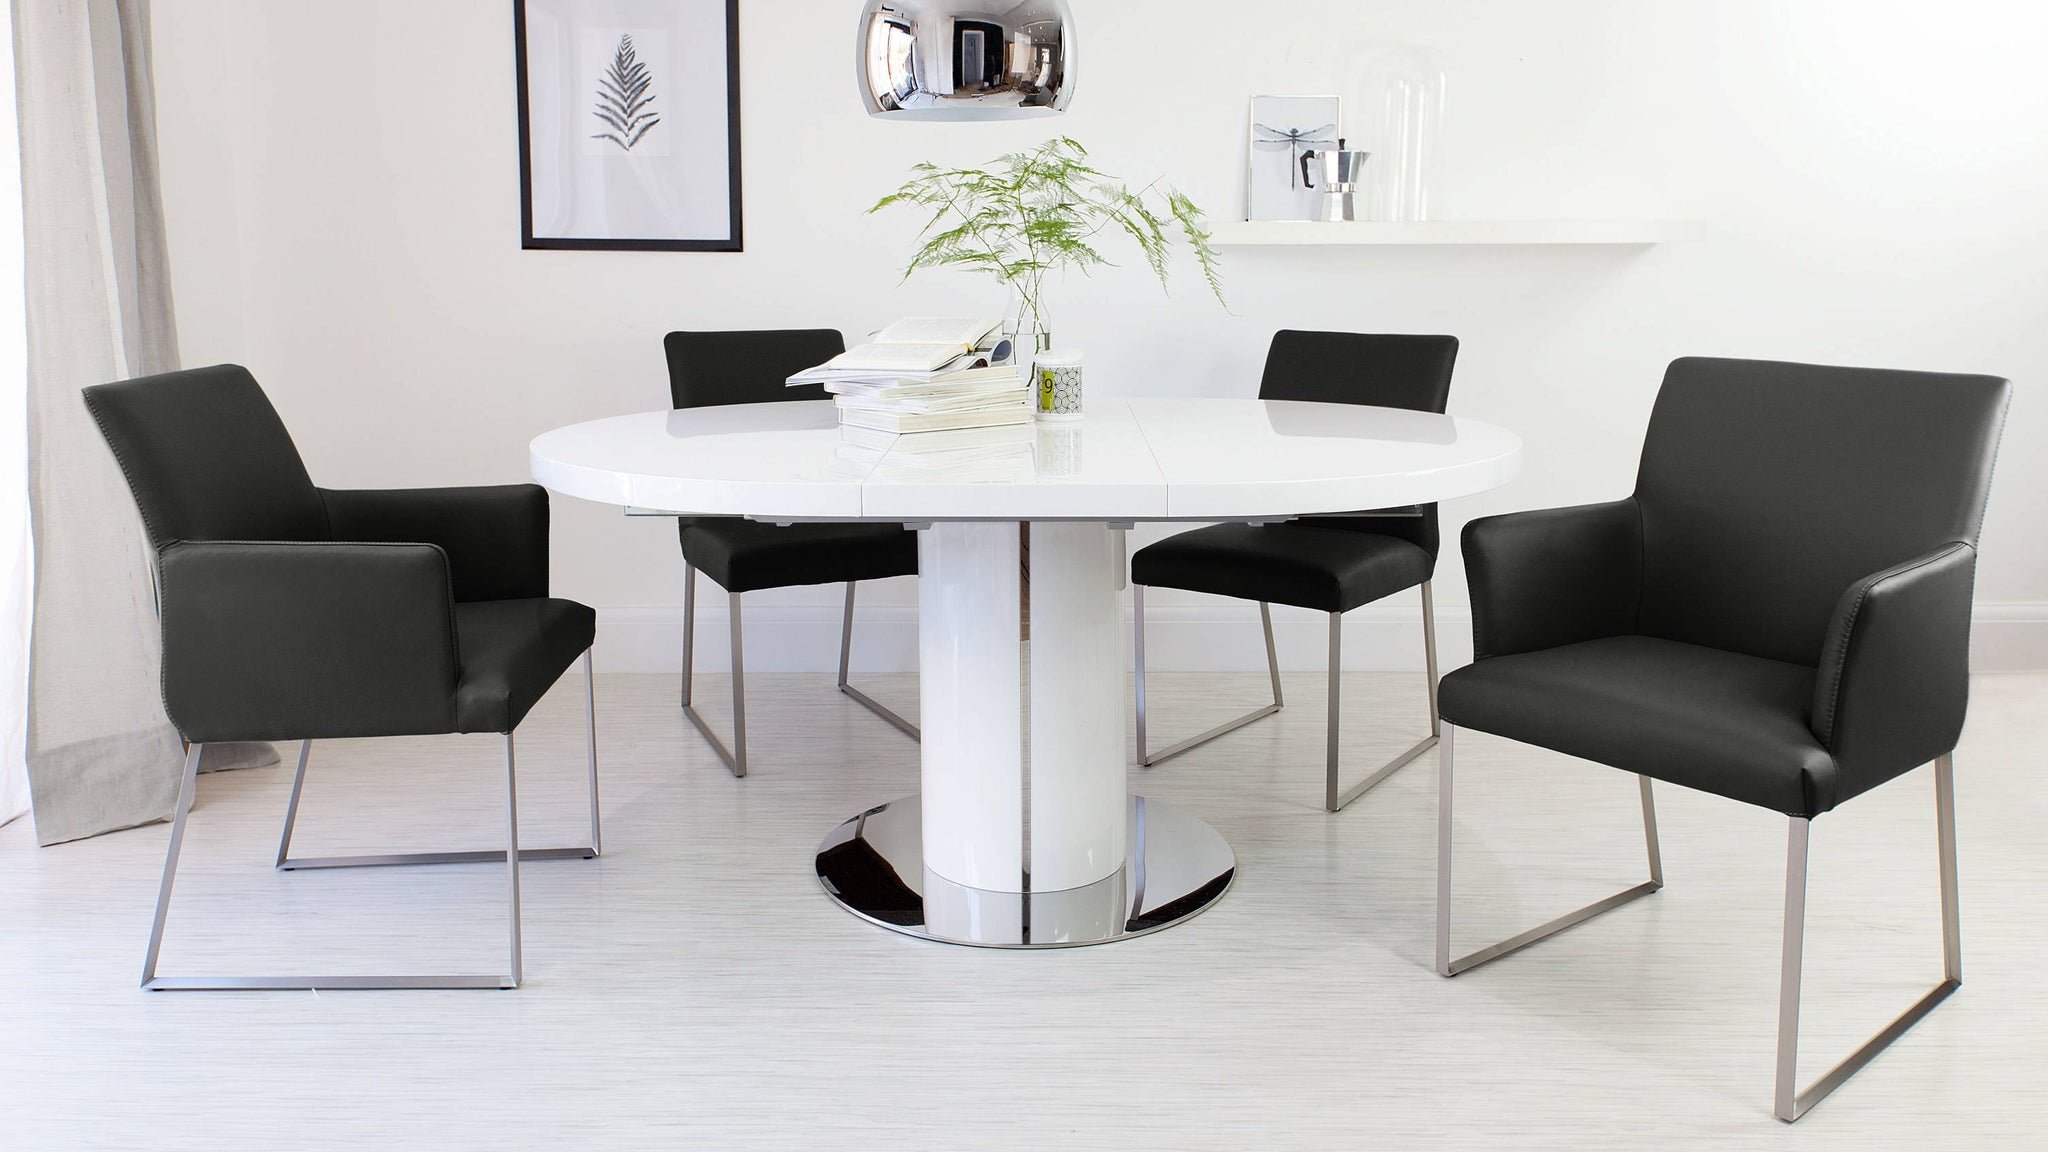 Black Leather Dining Chairs and White Gloss Extending Dining Table